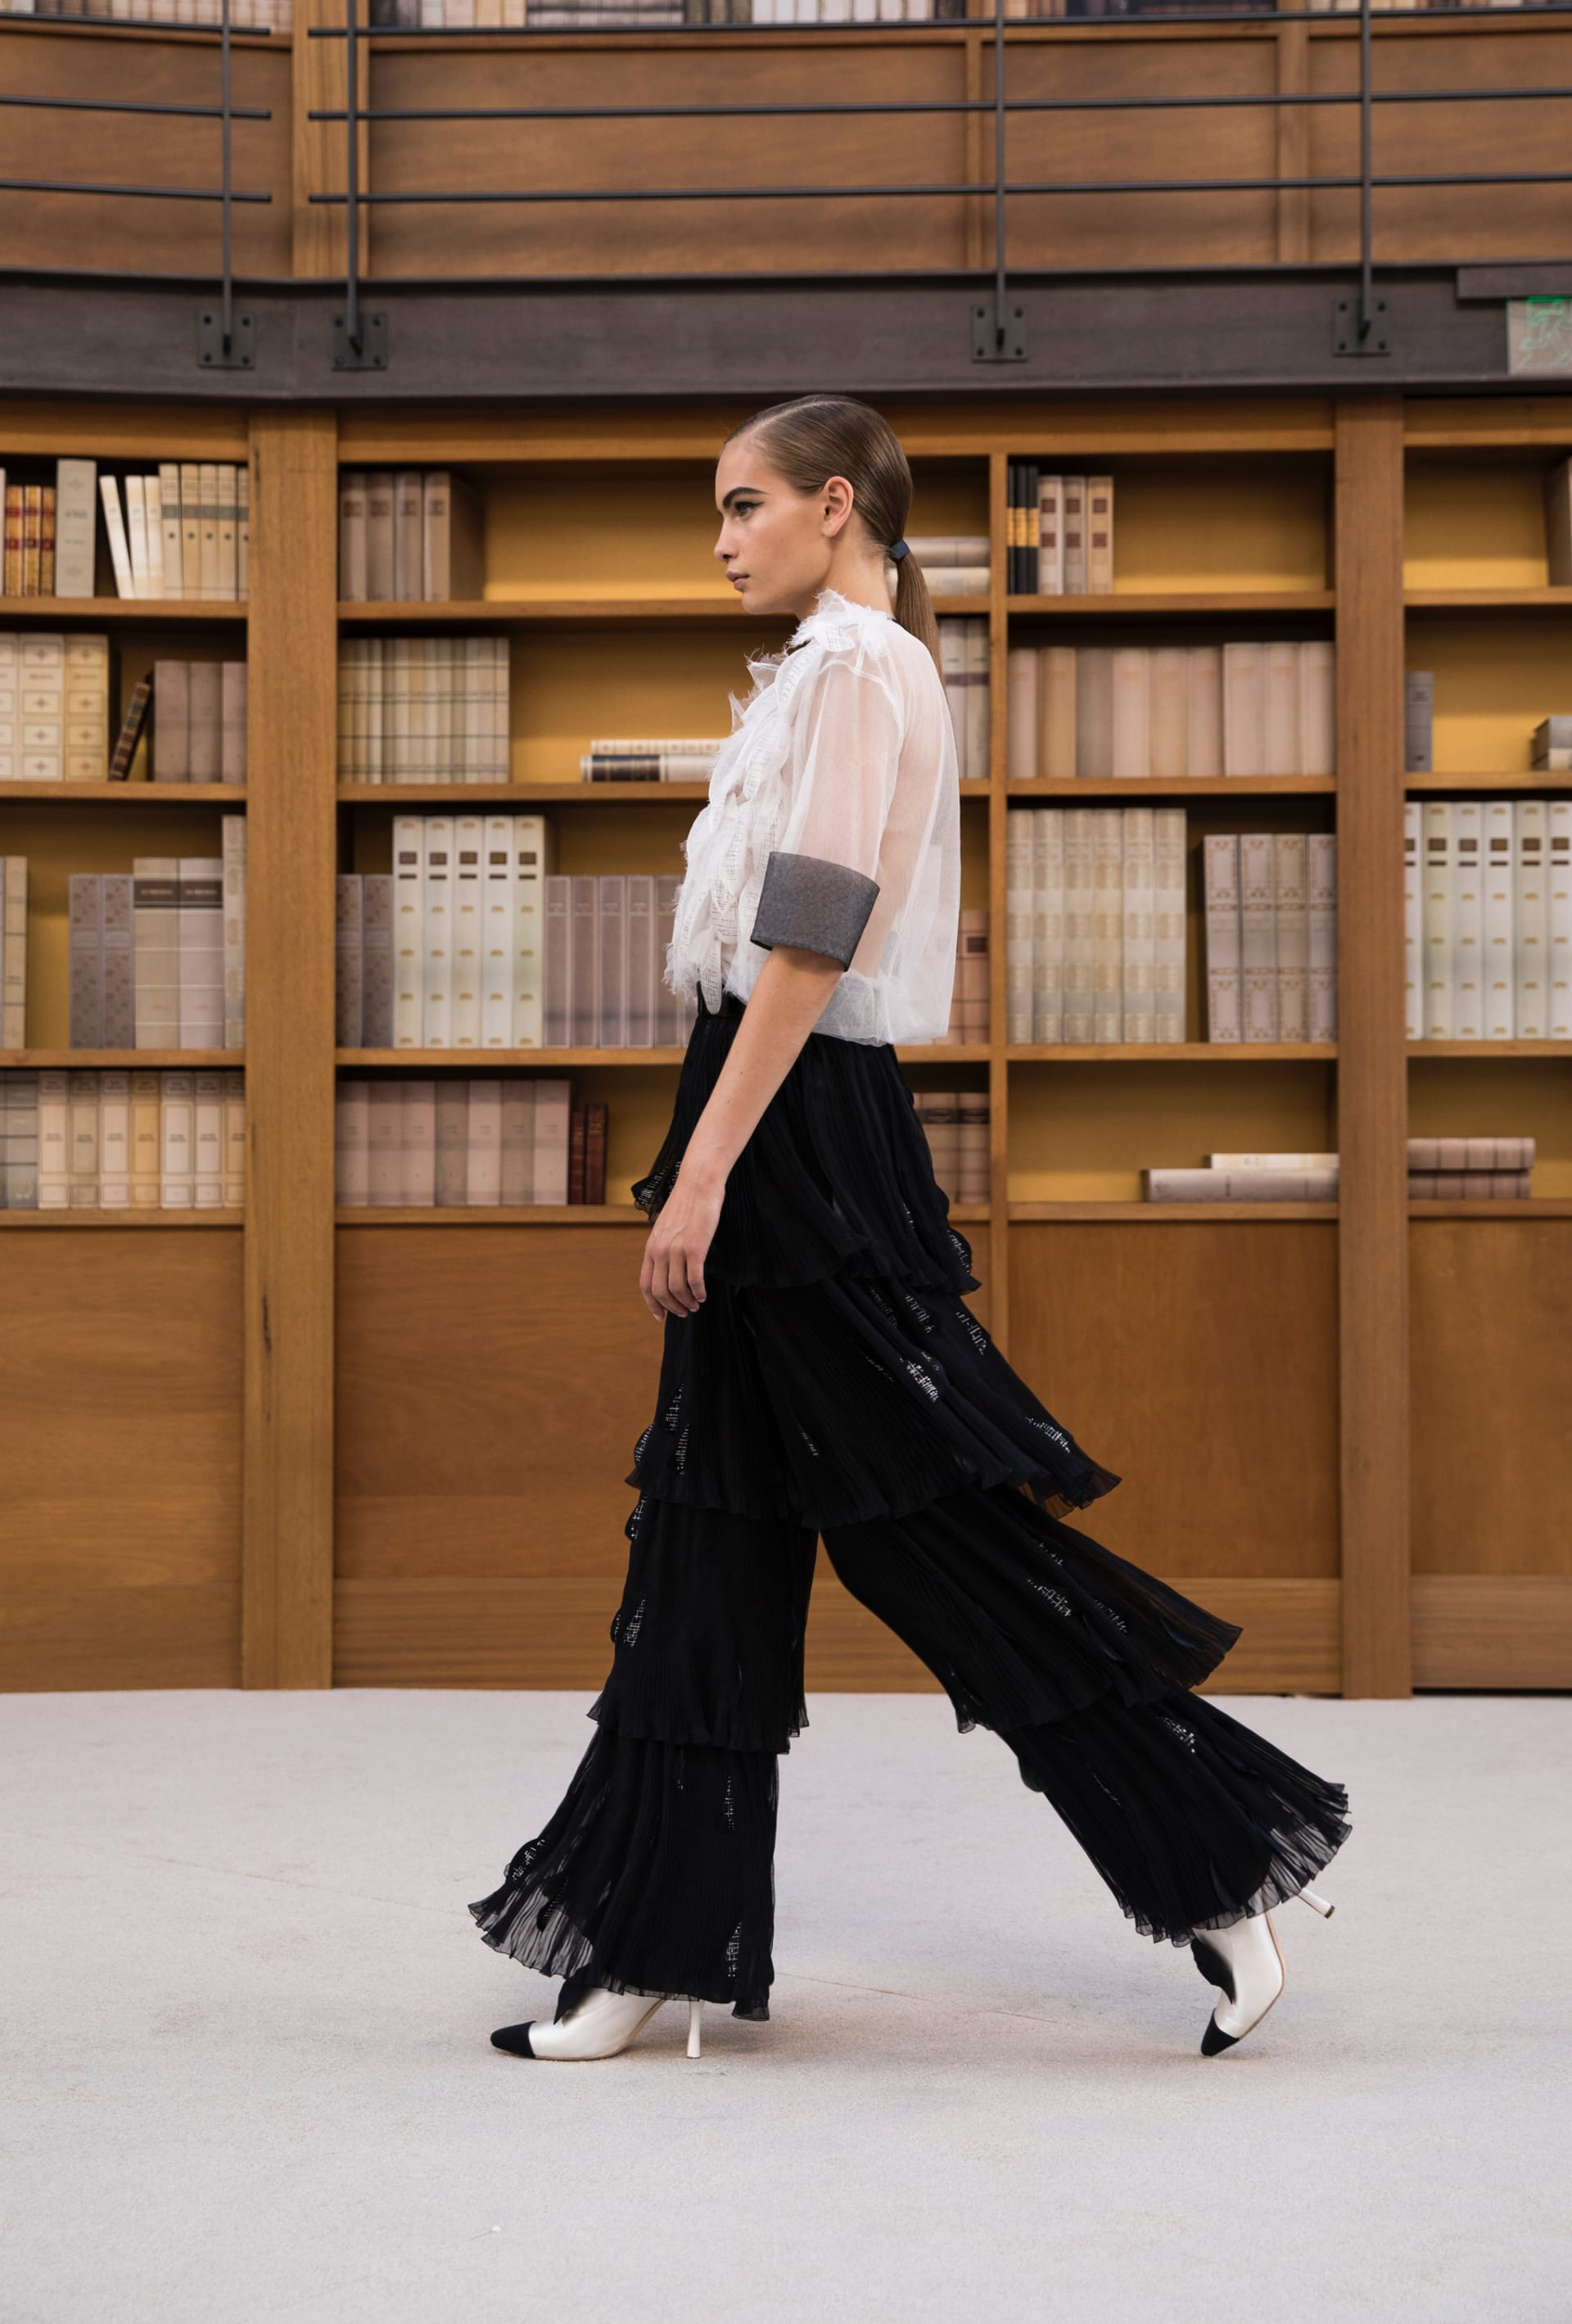 View 5 - Look 59 - Fall-Winter 2019/20 Haute-Couture - see full sized version